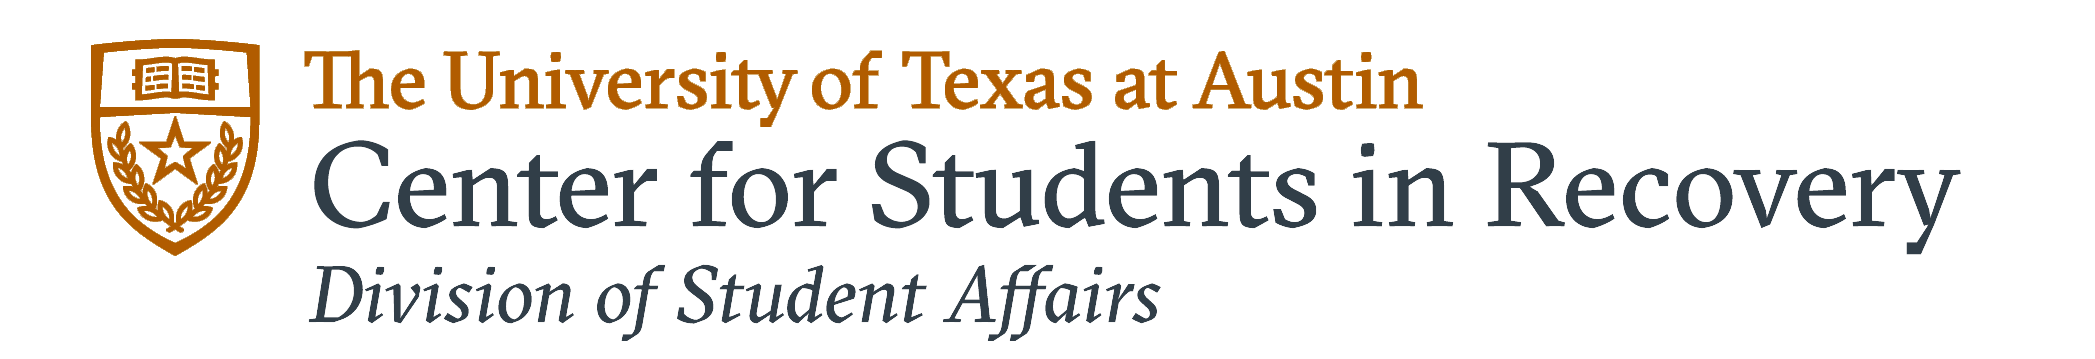 UT Center for Students in Recovery